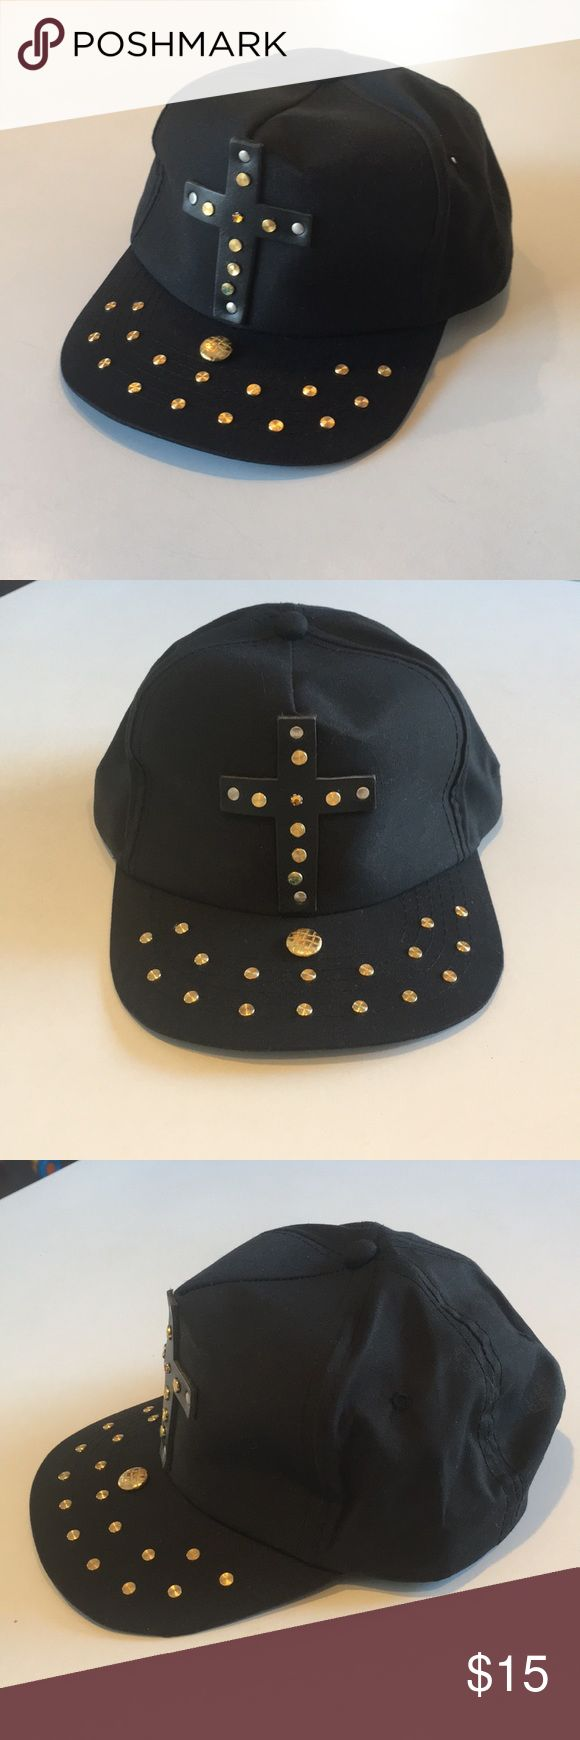 Patricia Field's Adjustable Custom SnapBack Hat Super cool, custom, cross hardware, snap back hat from Patricia Field's in NYC.  Very Janet Jackson Rhythm Nation.  Never Worn. Excellent Condition. Patricia Field Accessories Hats